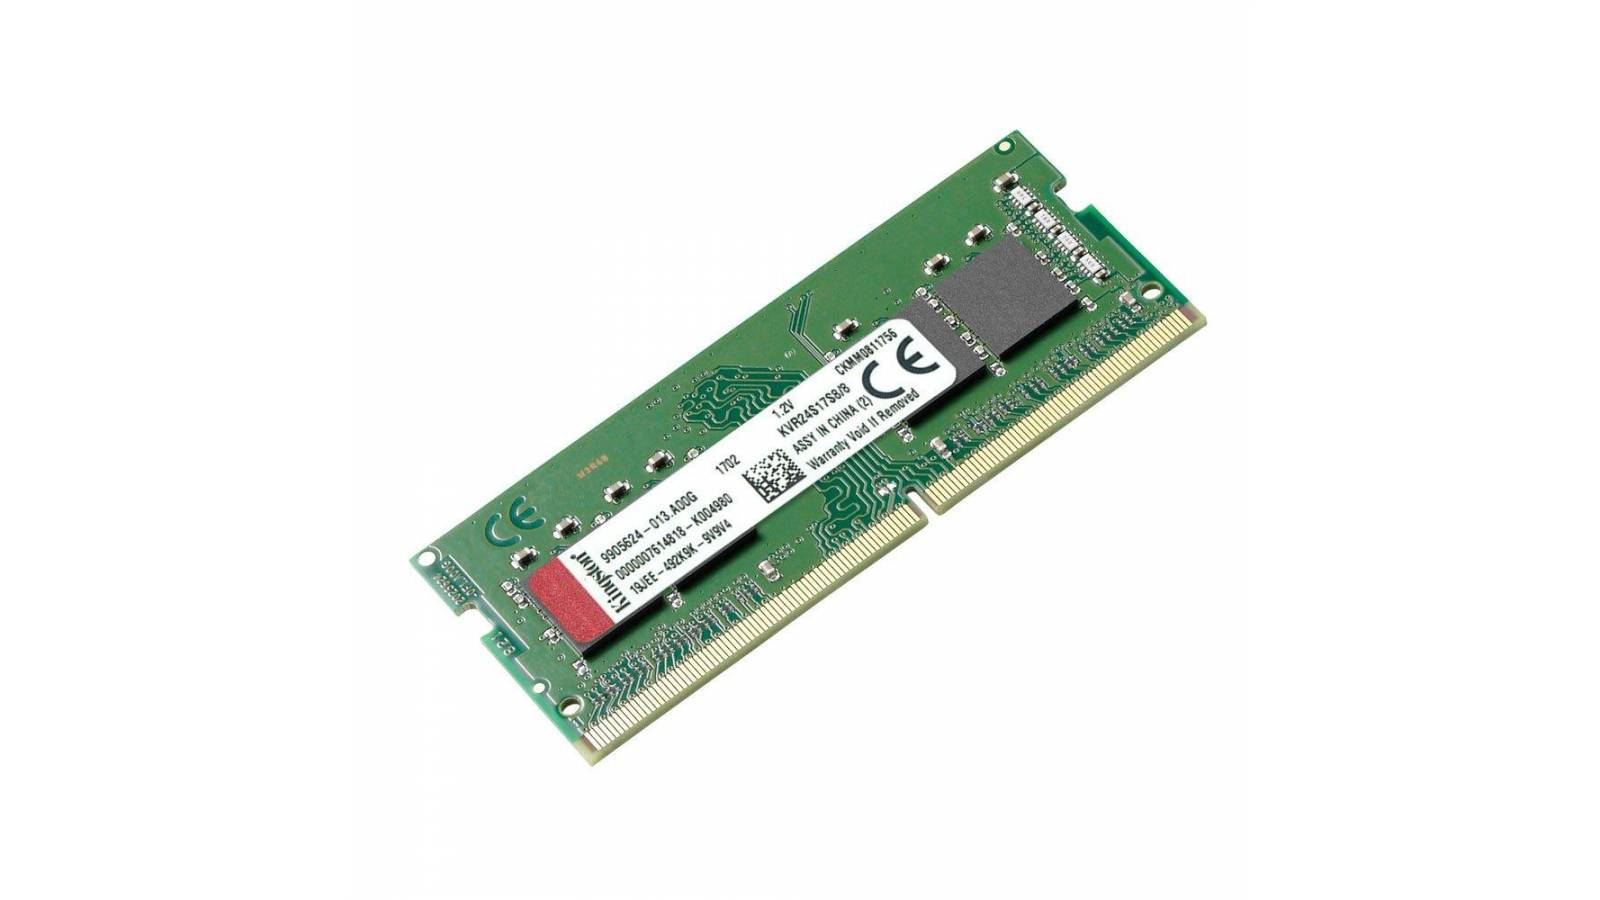 MEMORIA SODIMM 8GB DDR4 KINGSTON KVR24S17S8/8  -2400MHZ